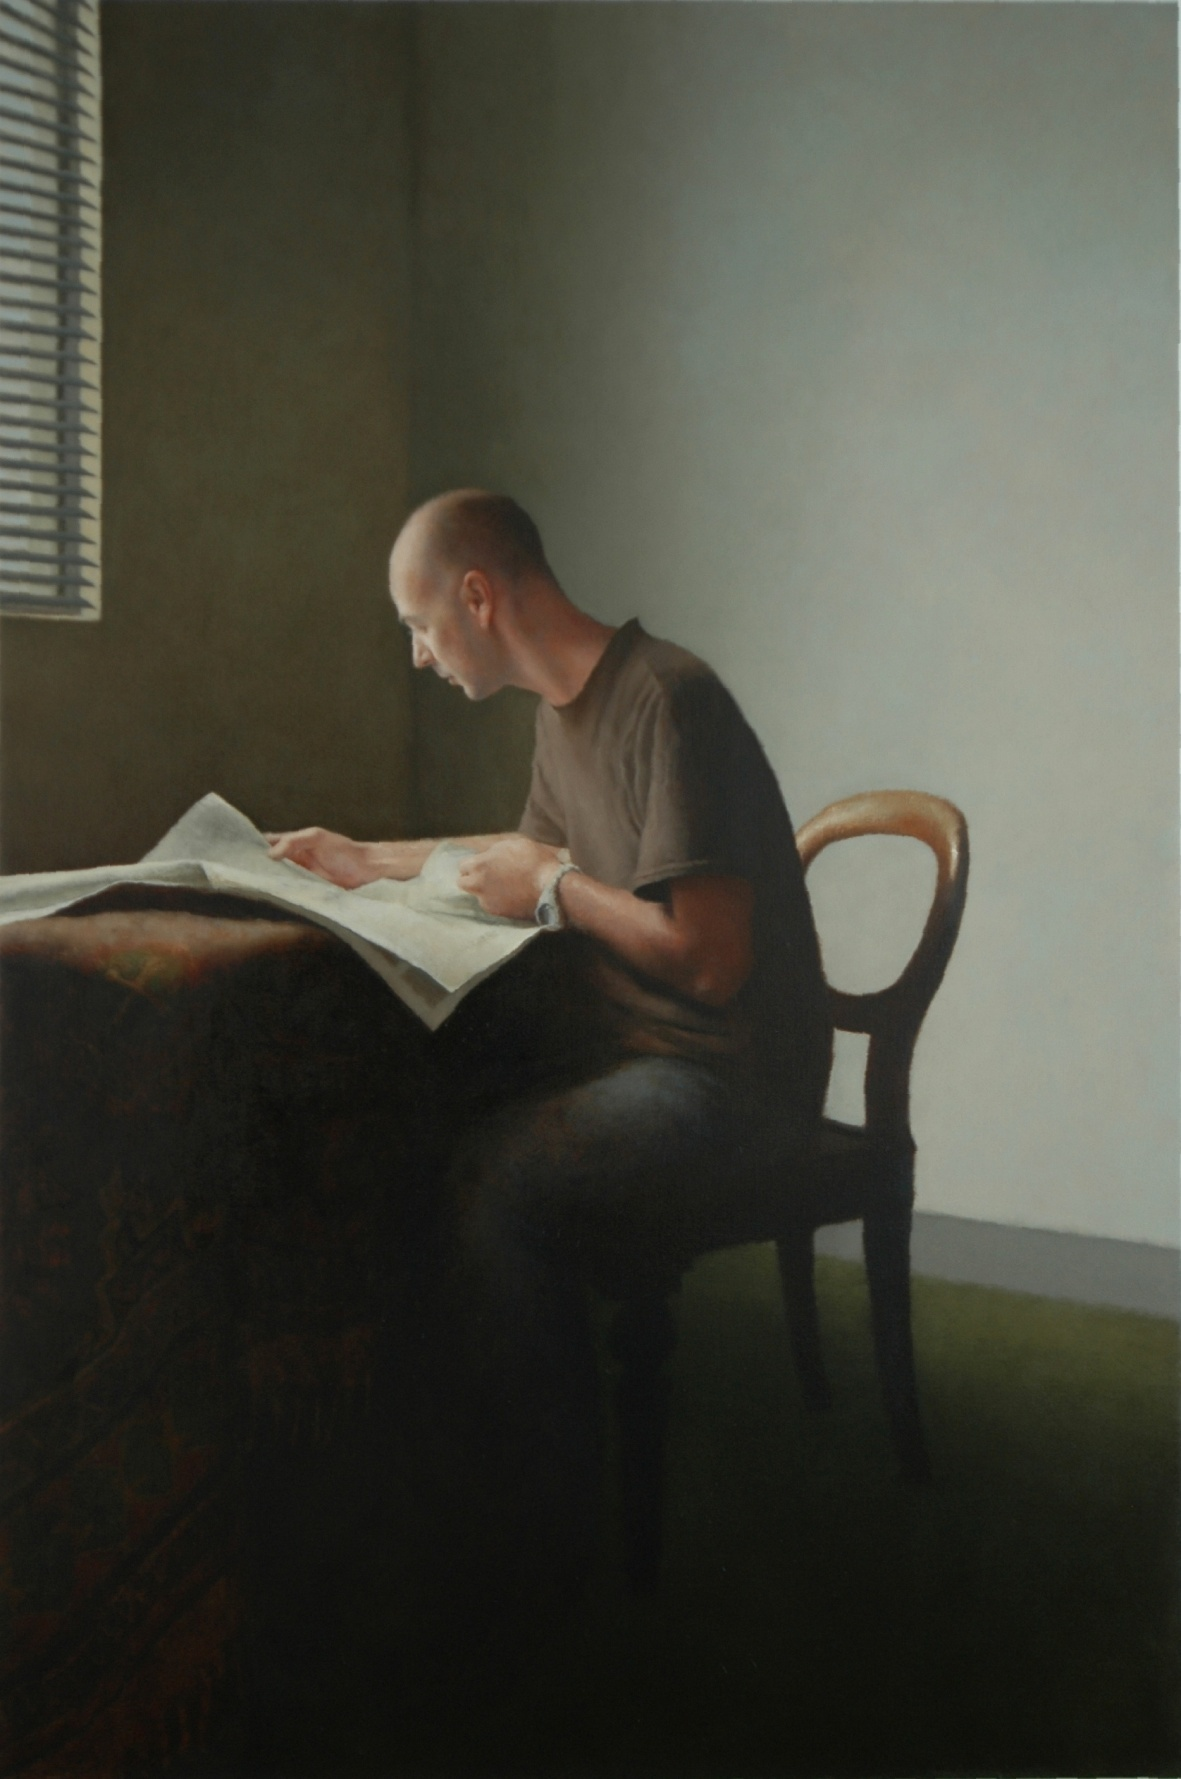 Large Interior 175 (Richard), 2005, Oil on linen, 1800mm x 1200mm.